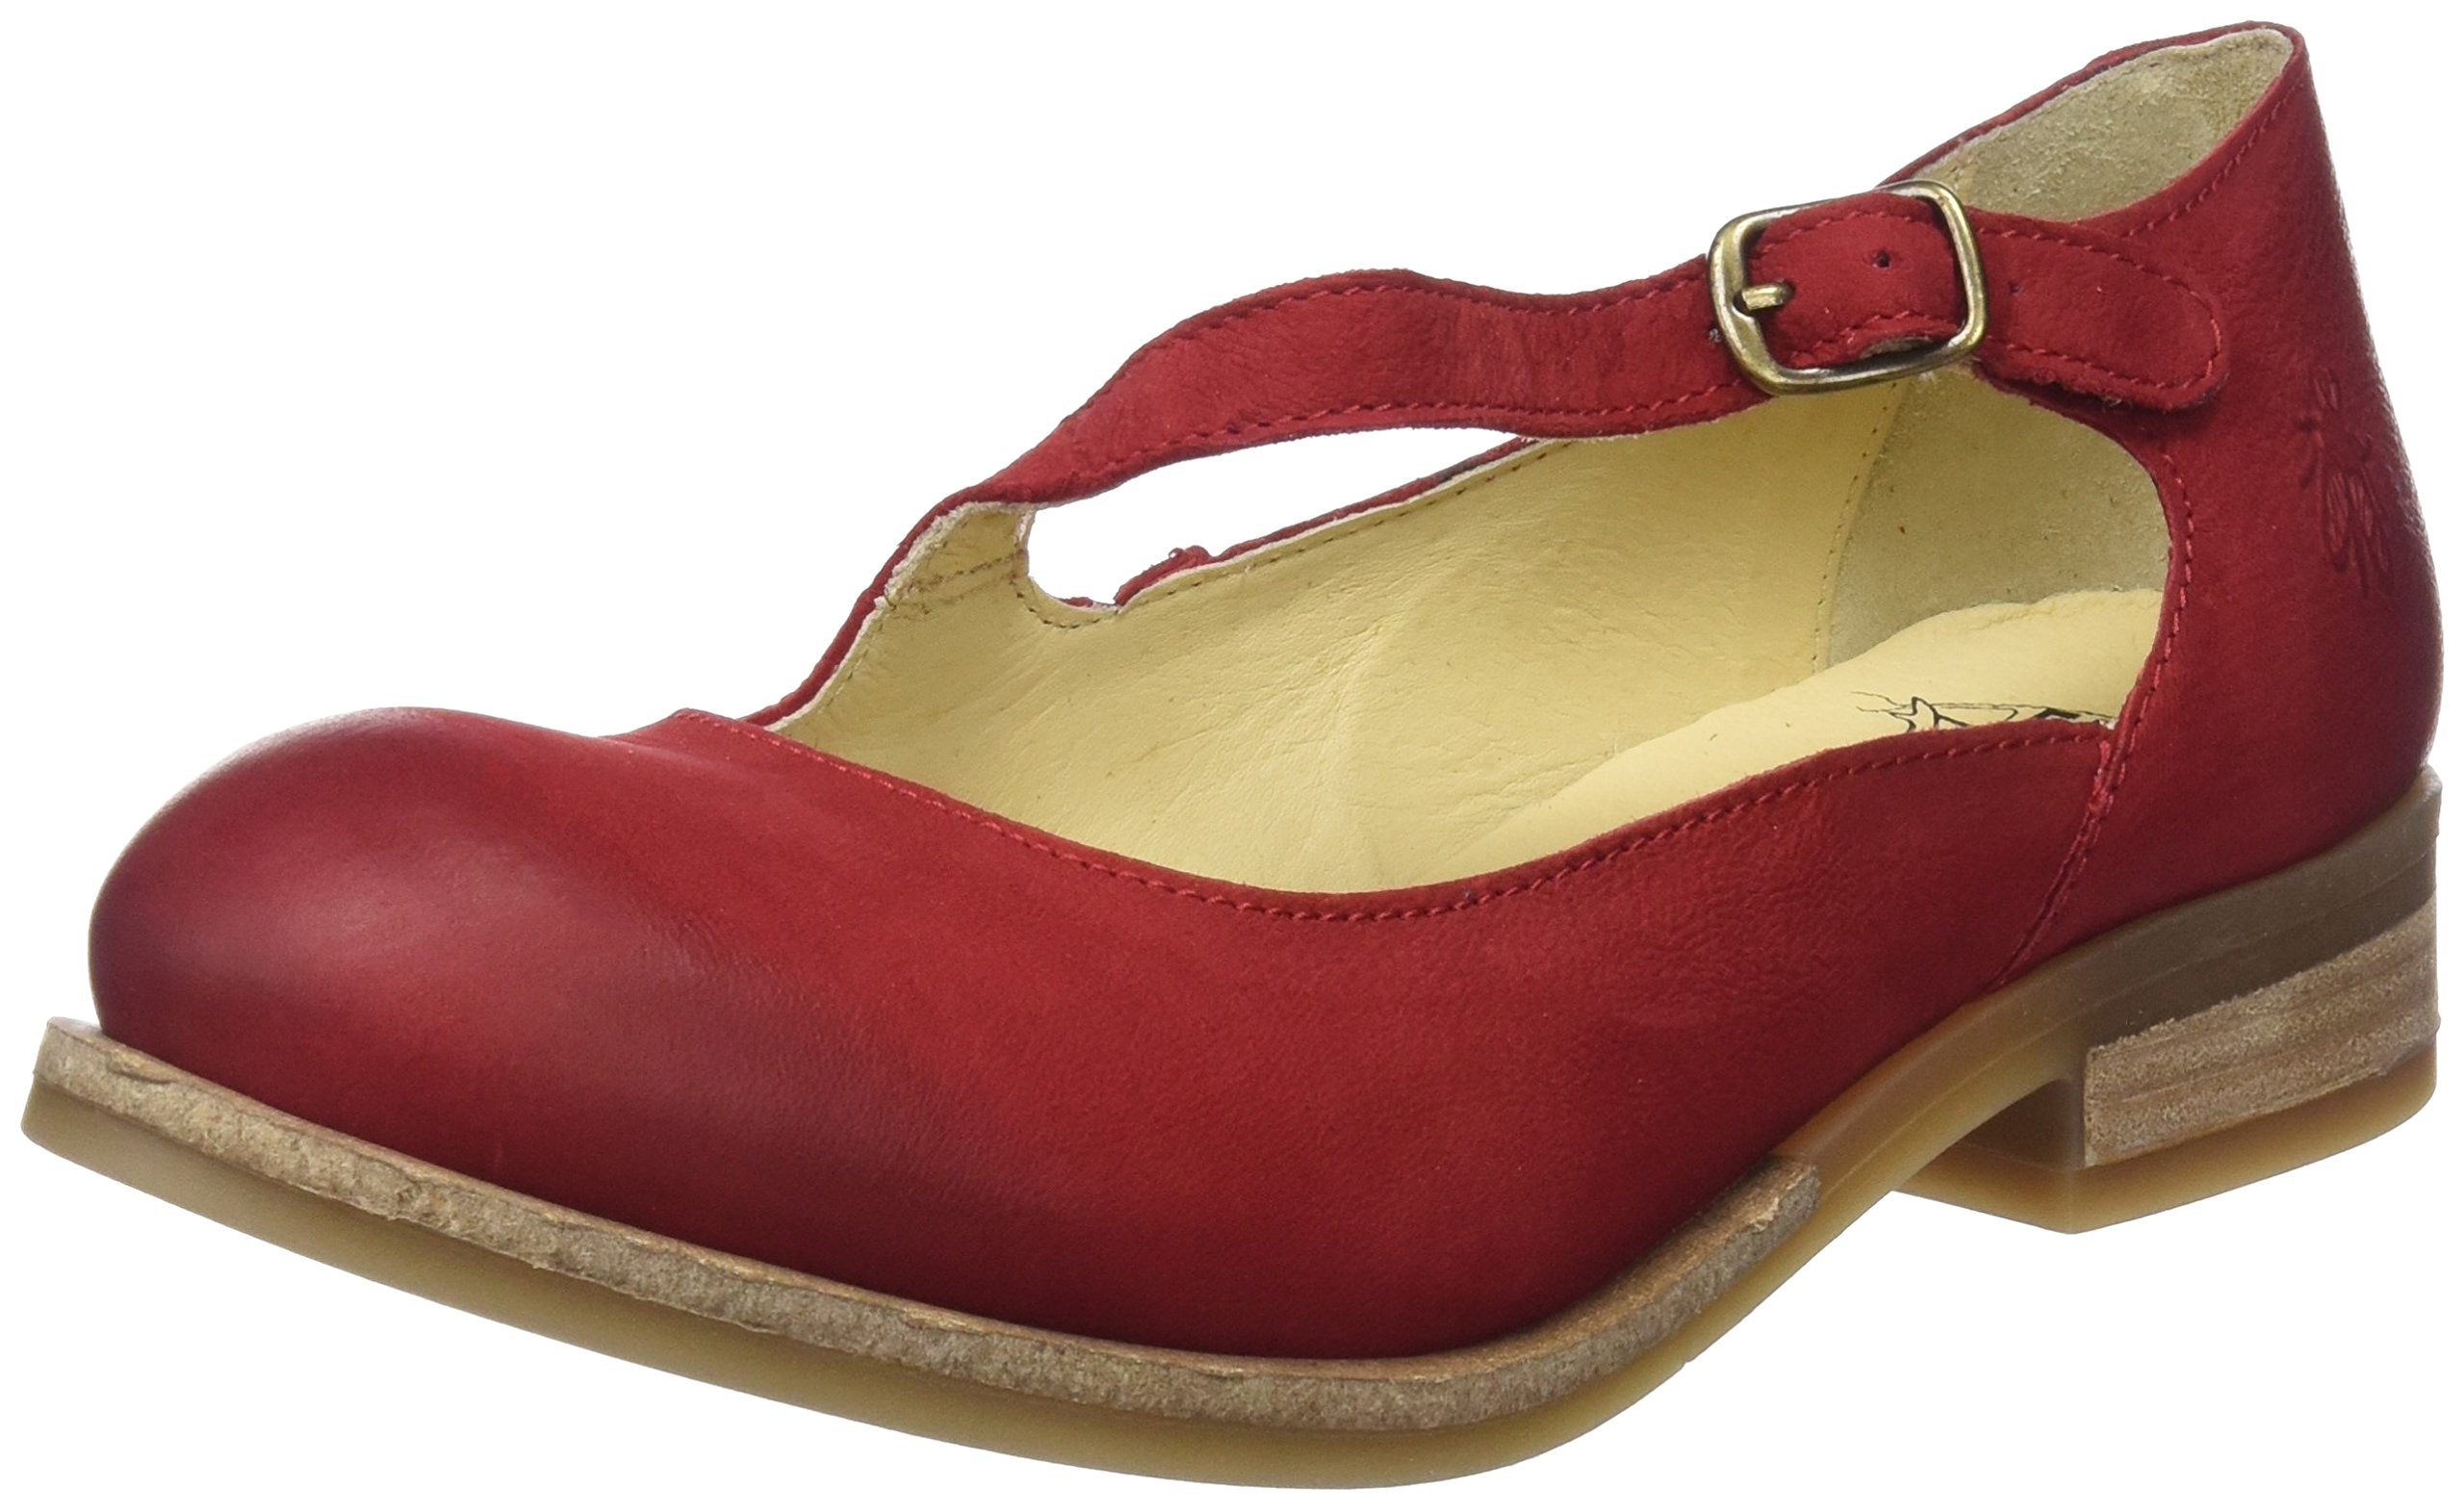 London Fermé Bout FemmeRougelipstick Red38 Alky213flyBallerines Fly Eu jL4Ac35Rq